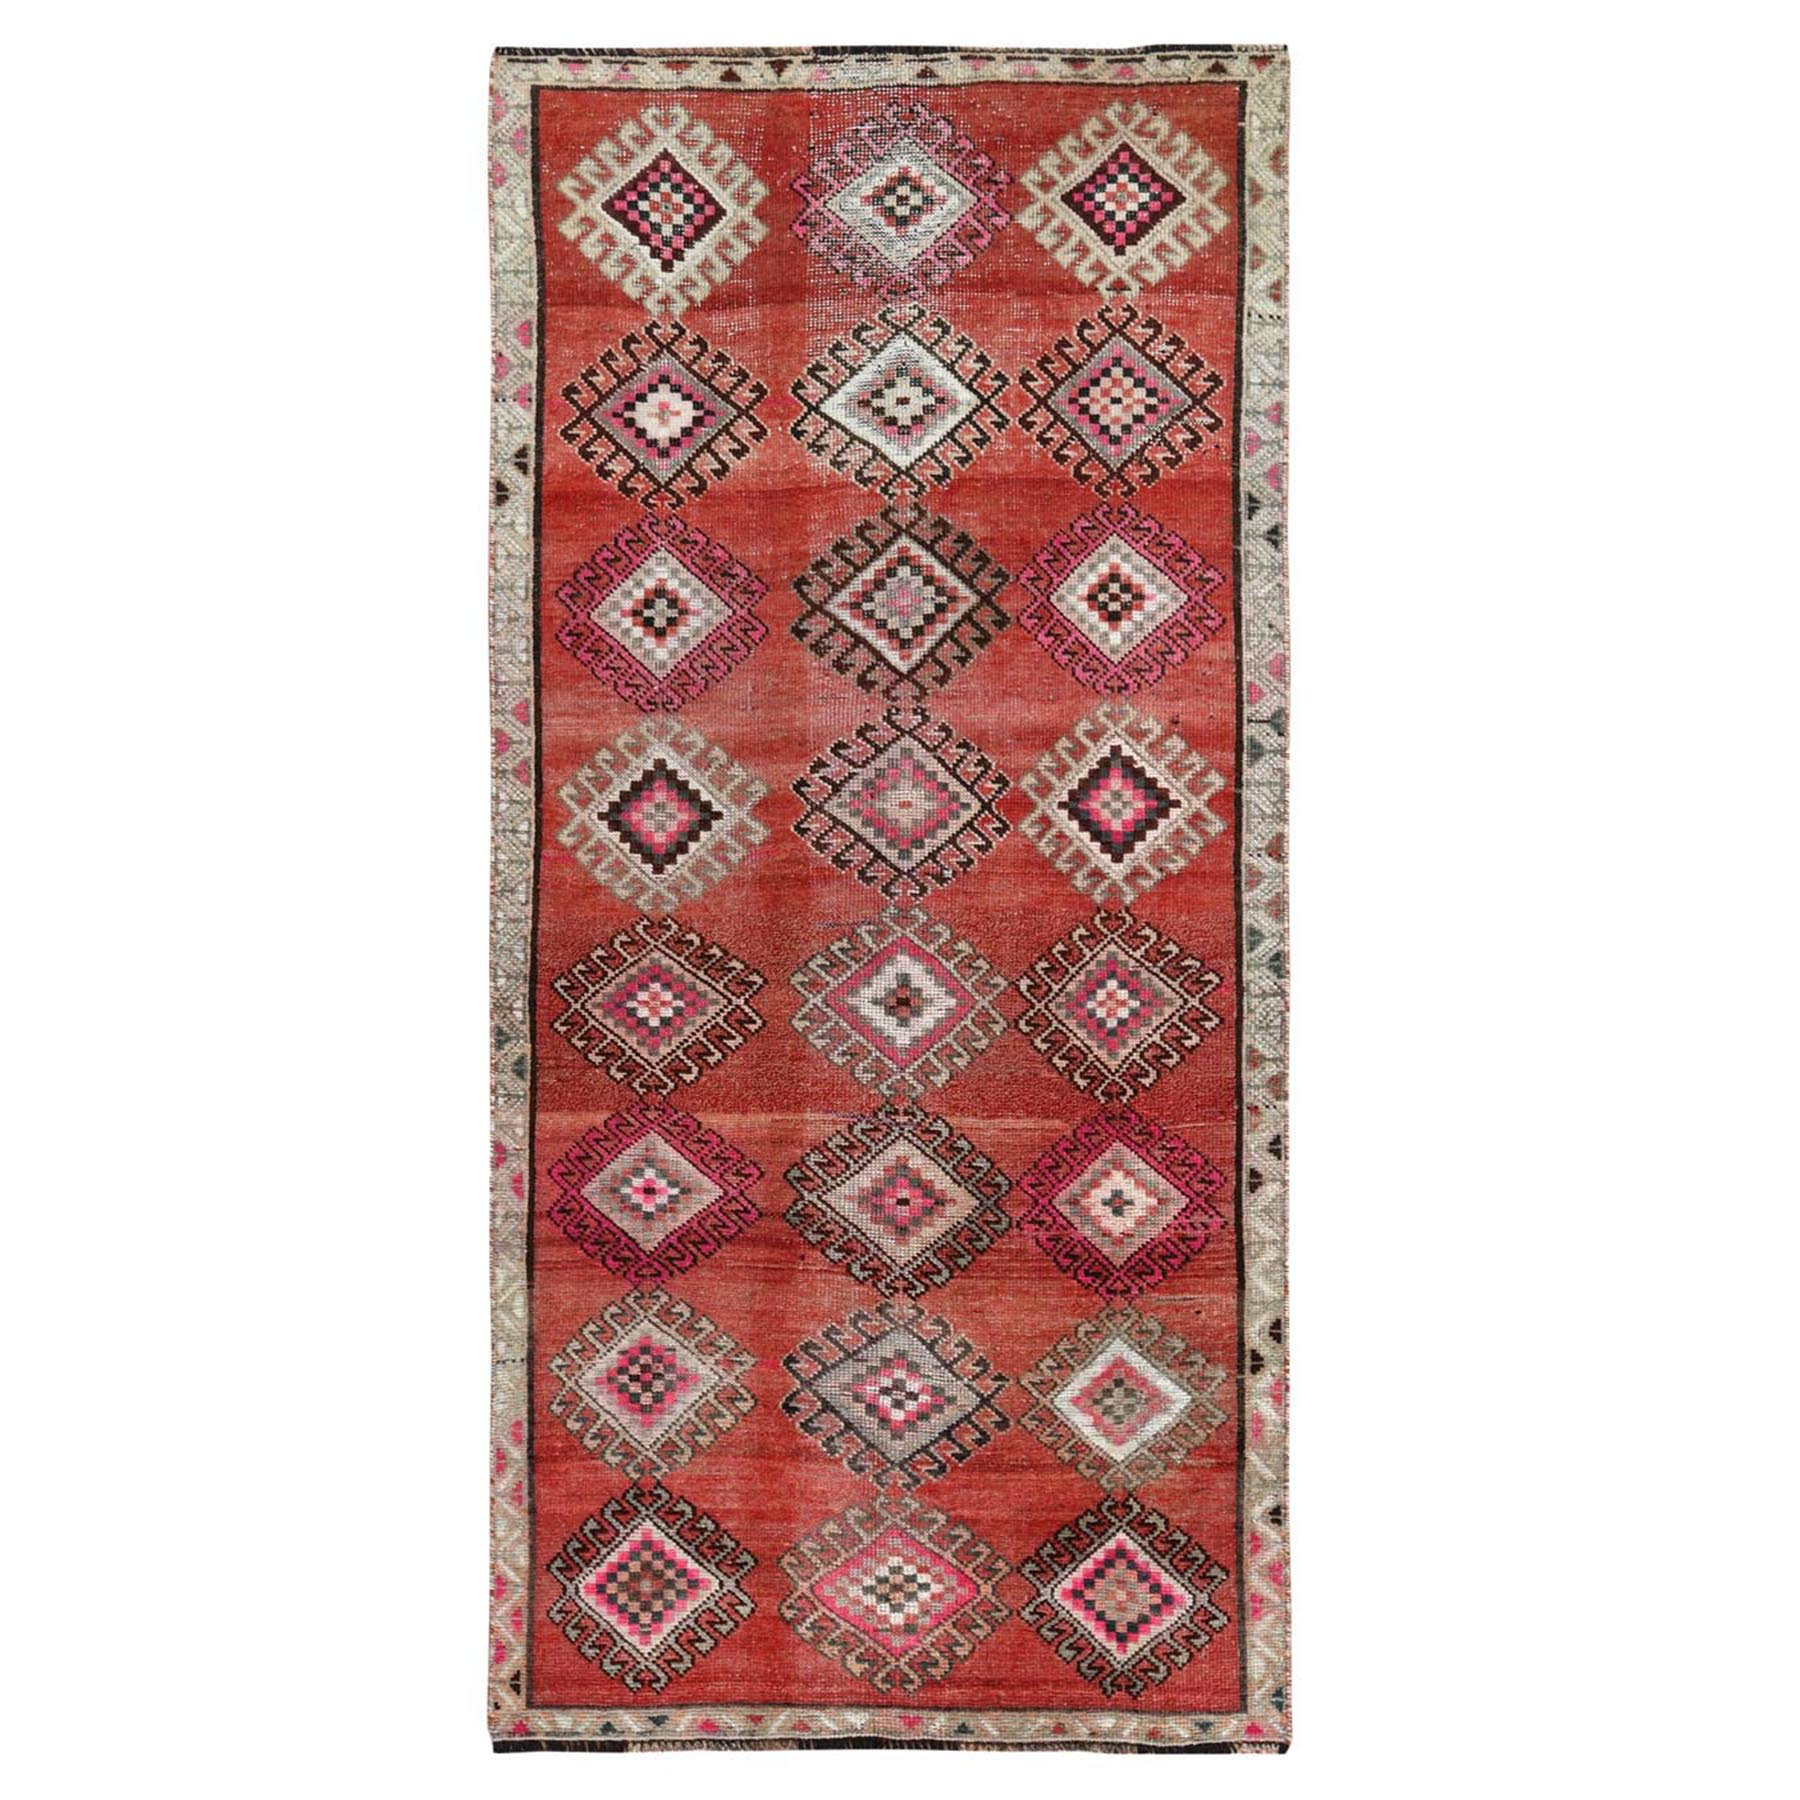 Fetneh Collection And Vintage Overdyed Collection Hand Knotted Red Rug No: 1115546